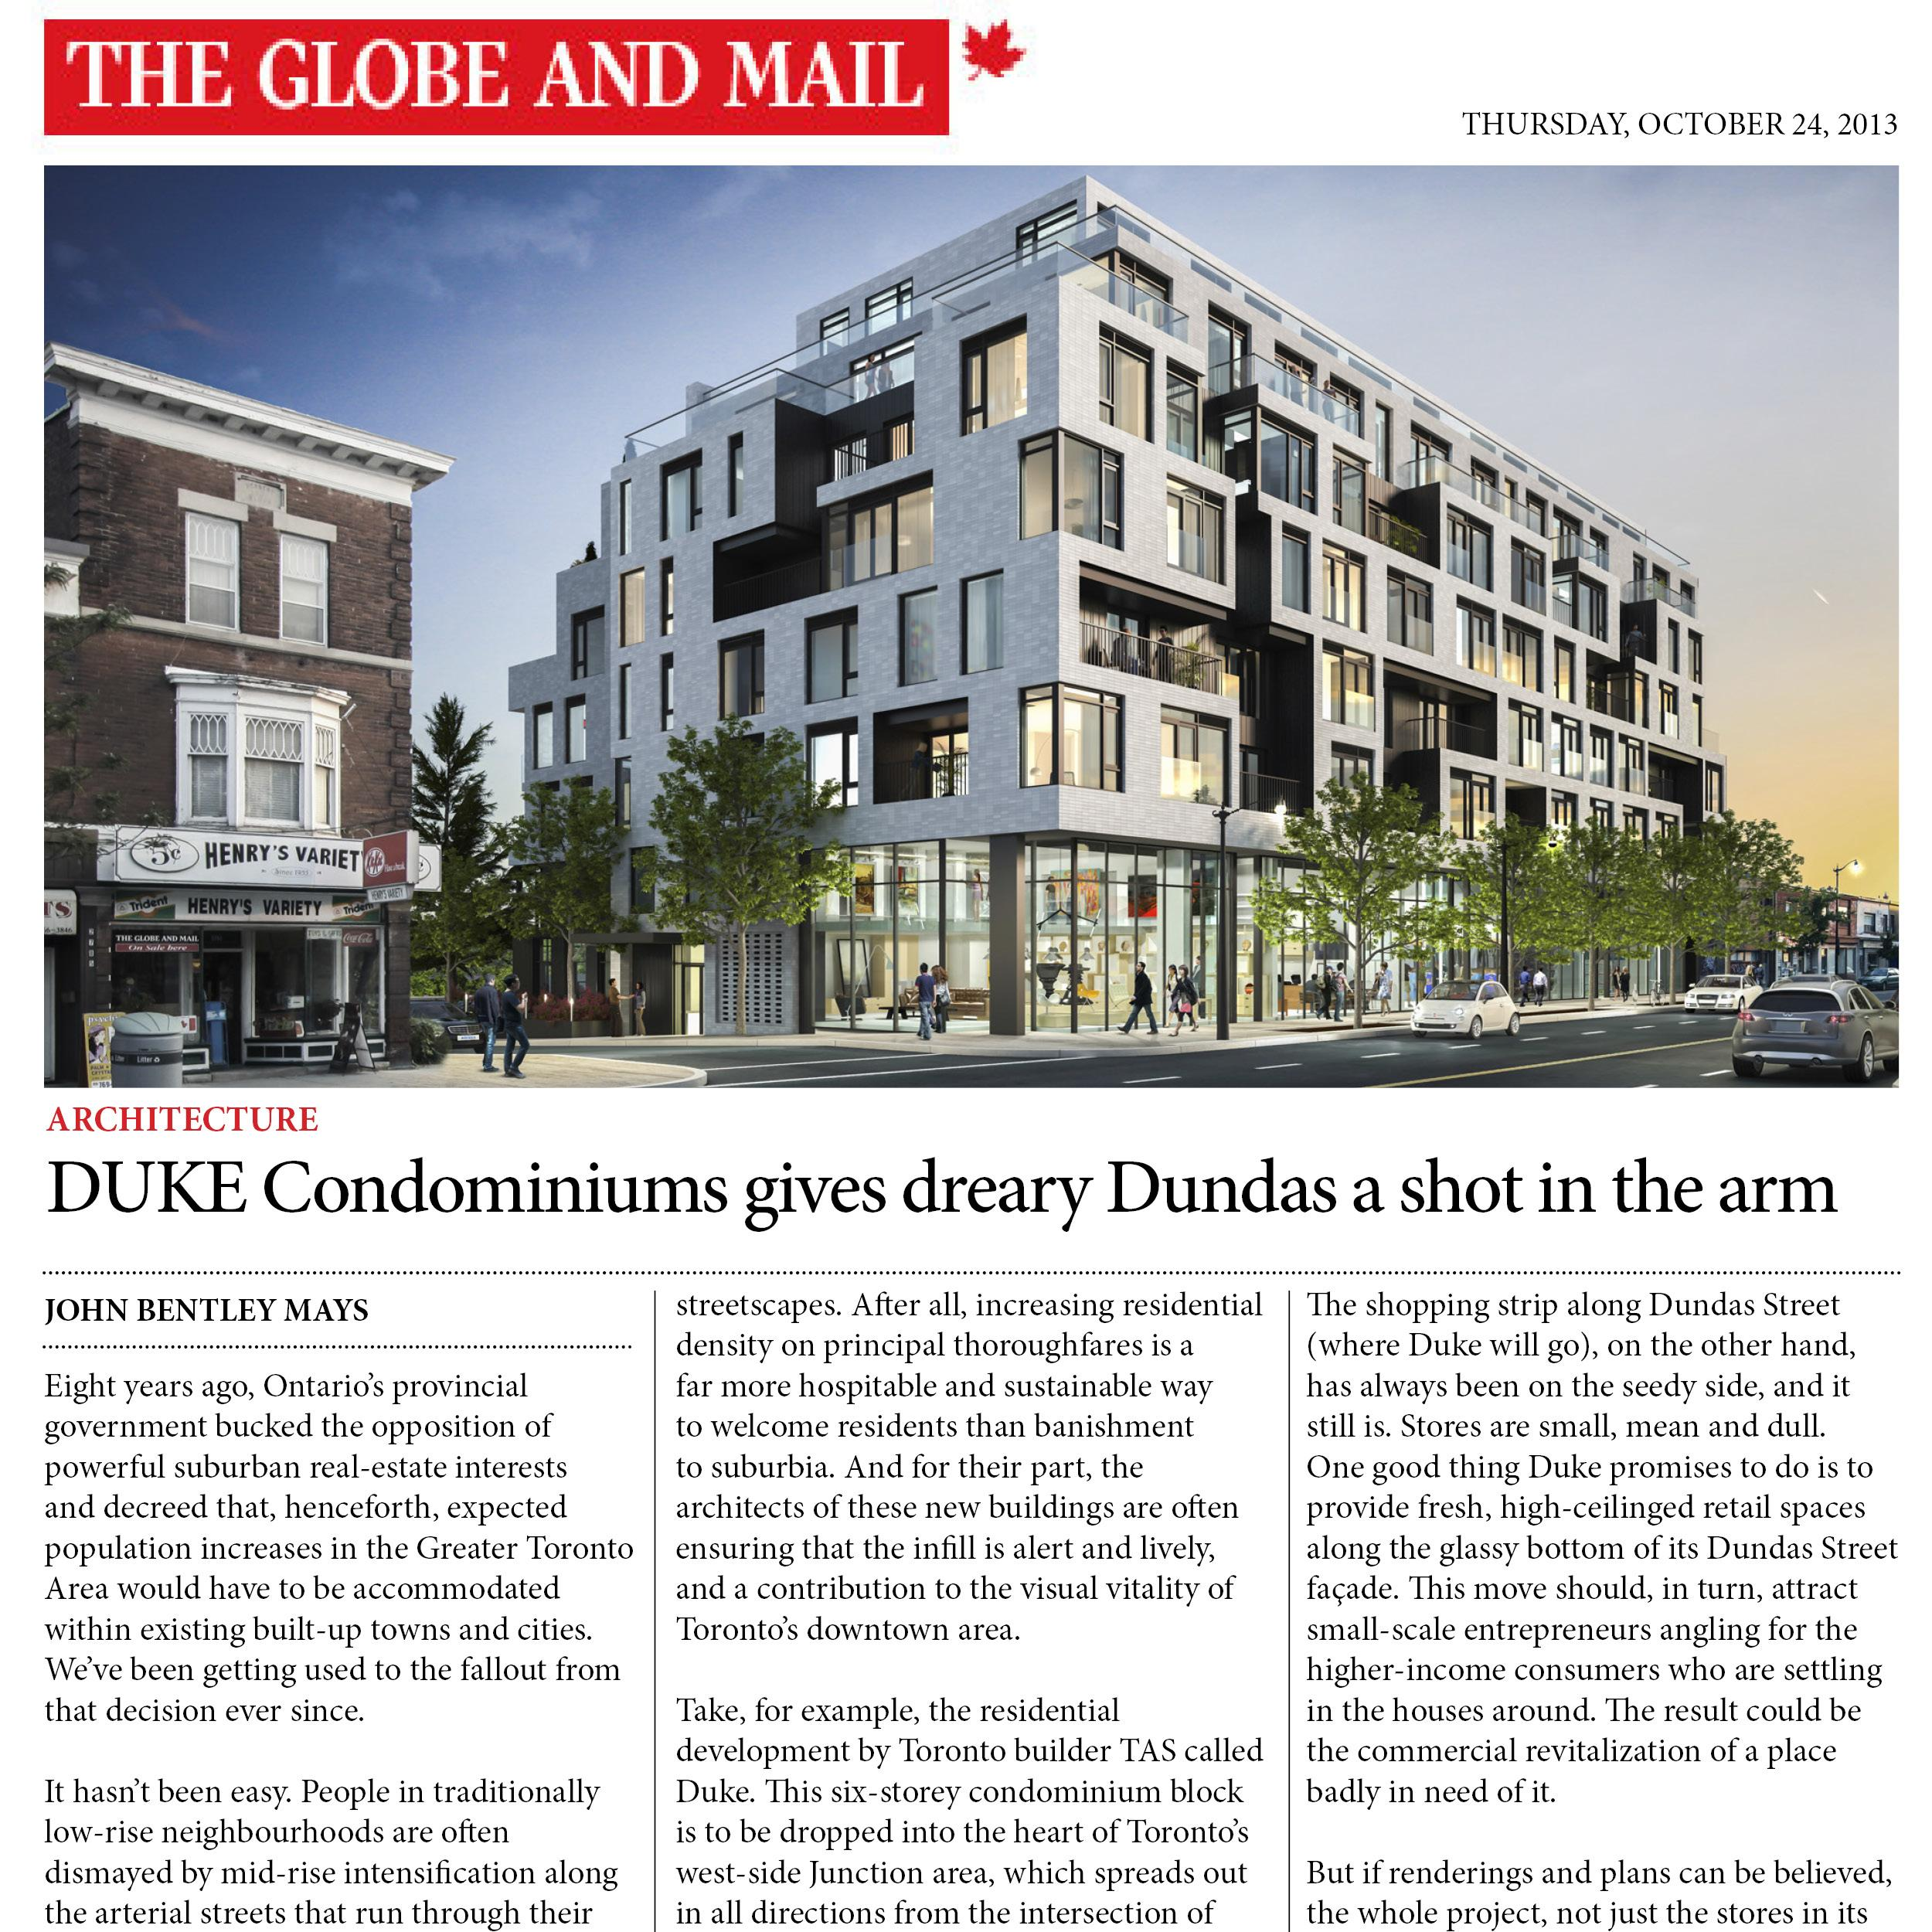 Globe and Mail article about DUKE Condos